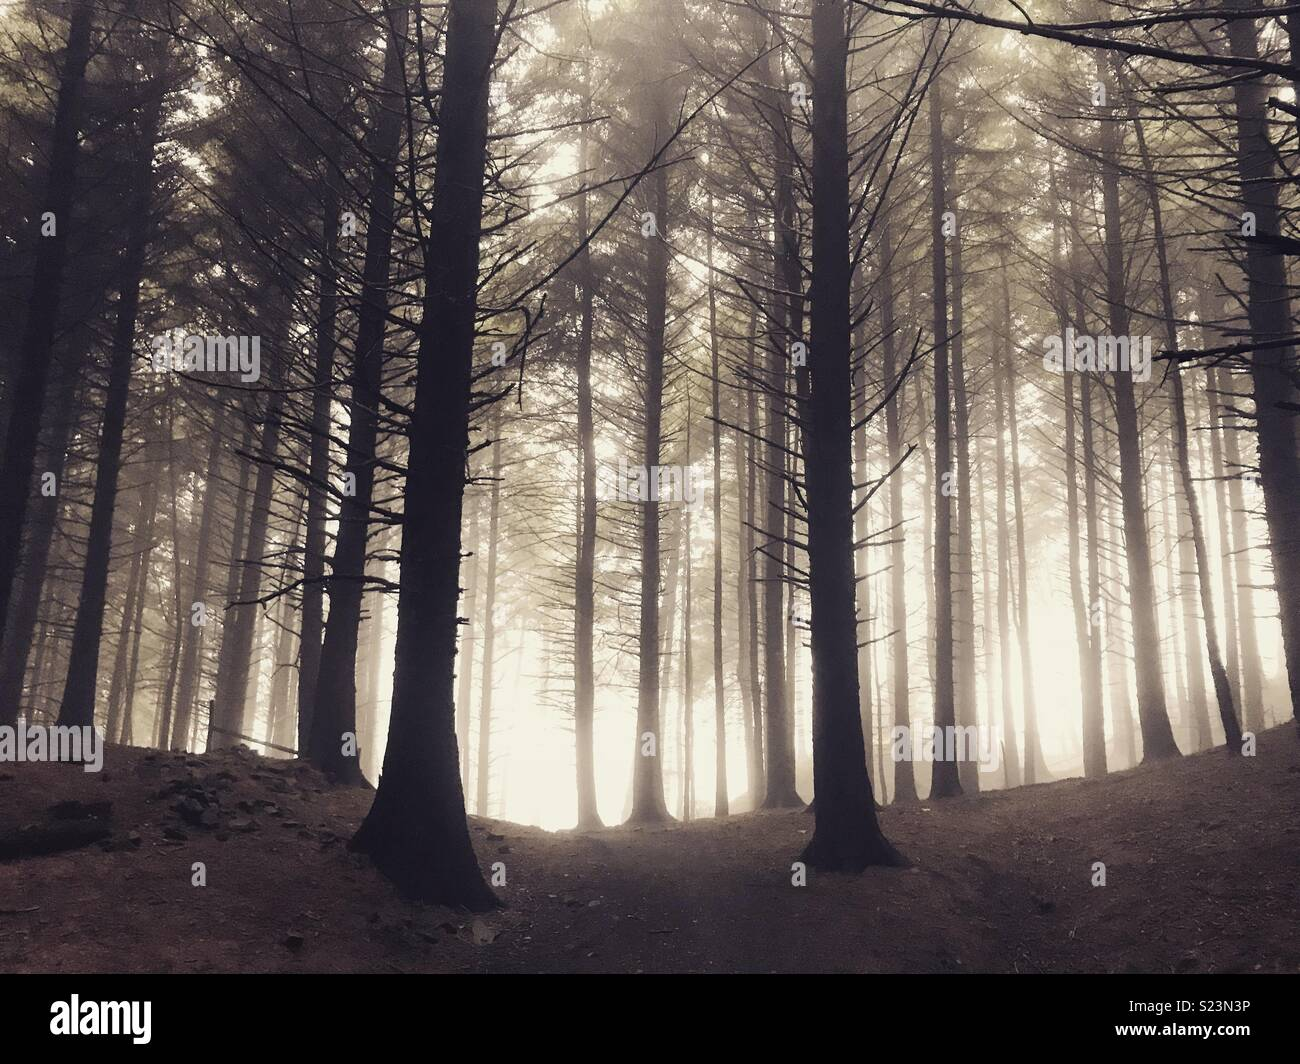 Macclesfield forest Photo Stock